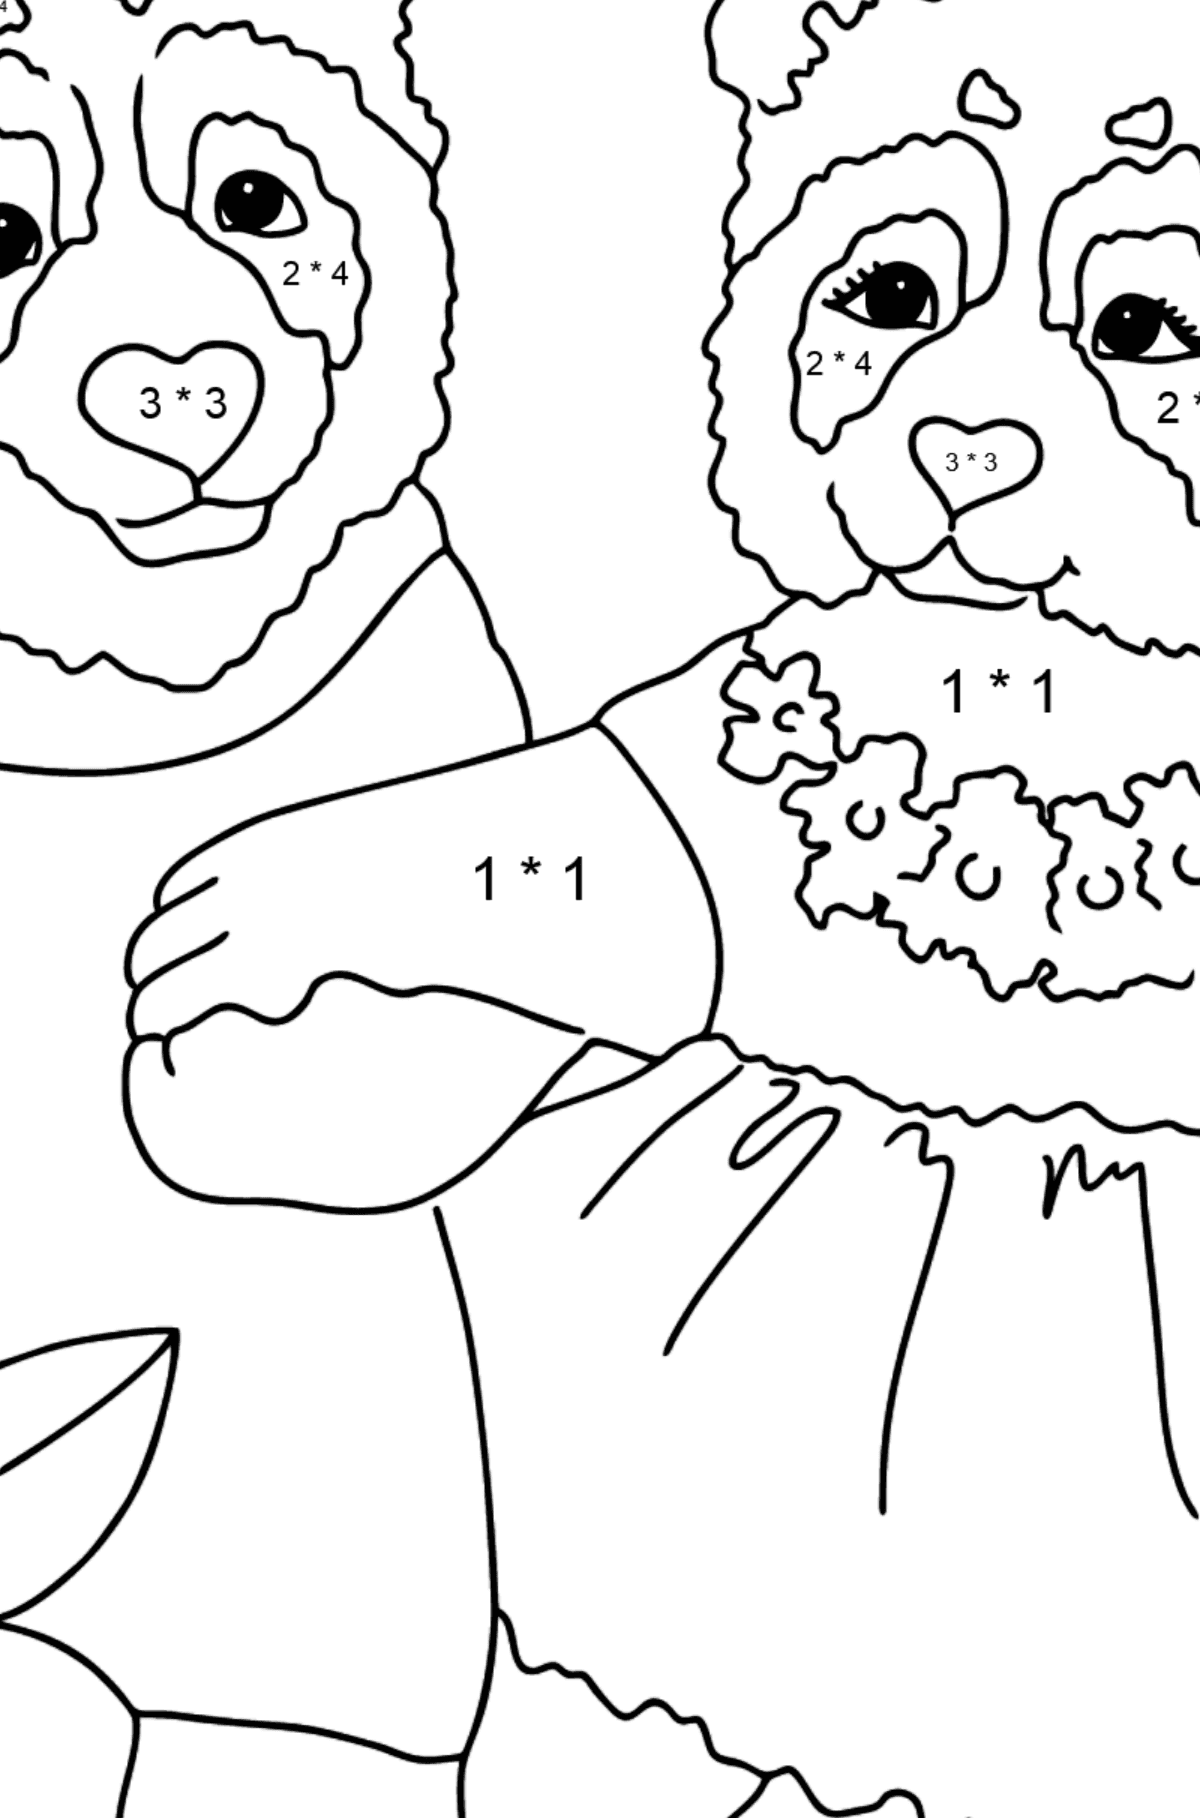 Coloring Page - Pandas Taking a Walk - Math Coloring - Multiplication for Kids